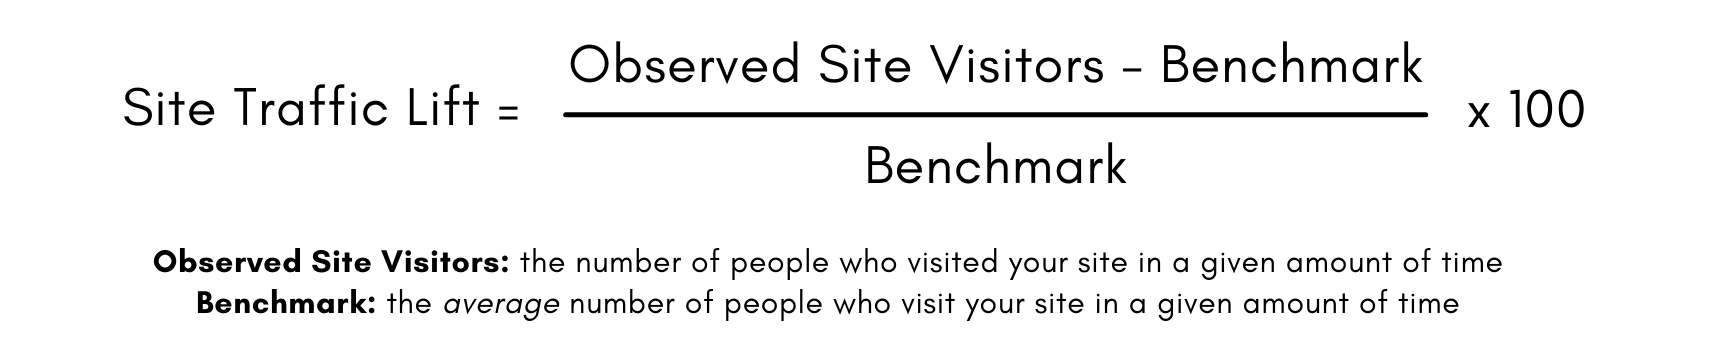 Formula for Site Traffic Lift: Number of Site Visitors minus the benchmark, divided by the benchmark, times 100.